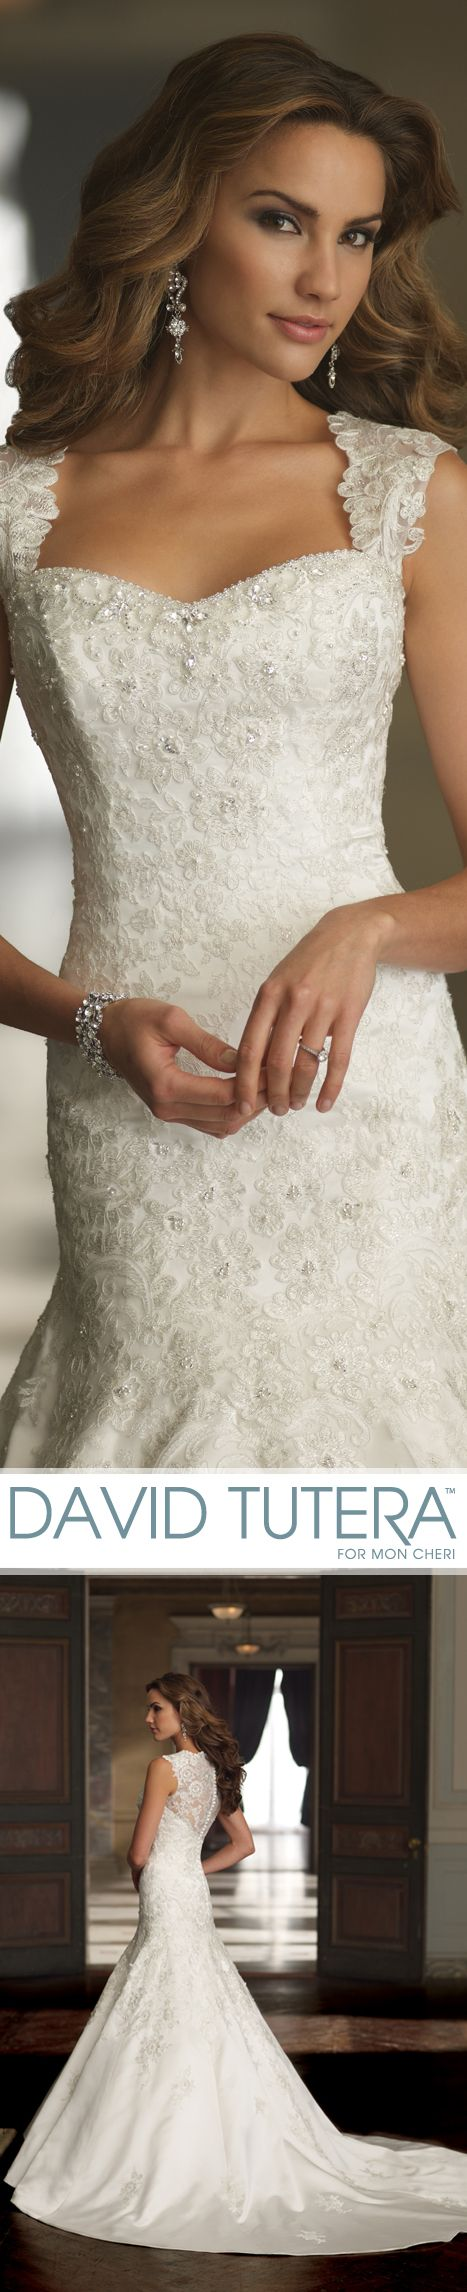 Style no macaria wedding dresses collection